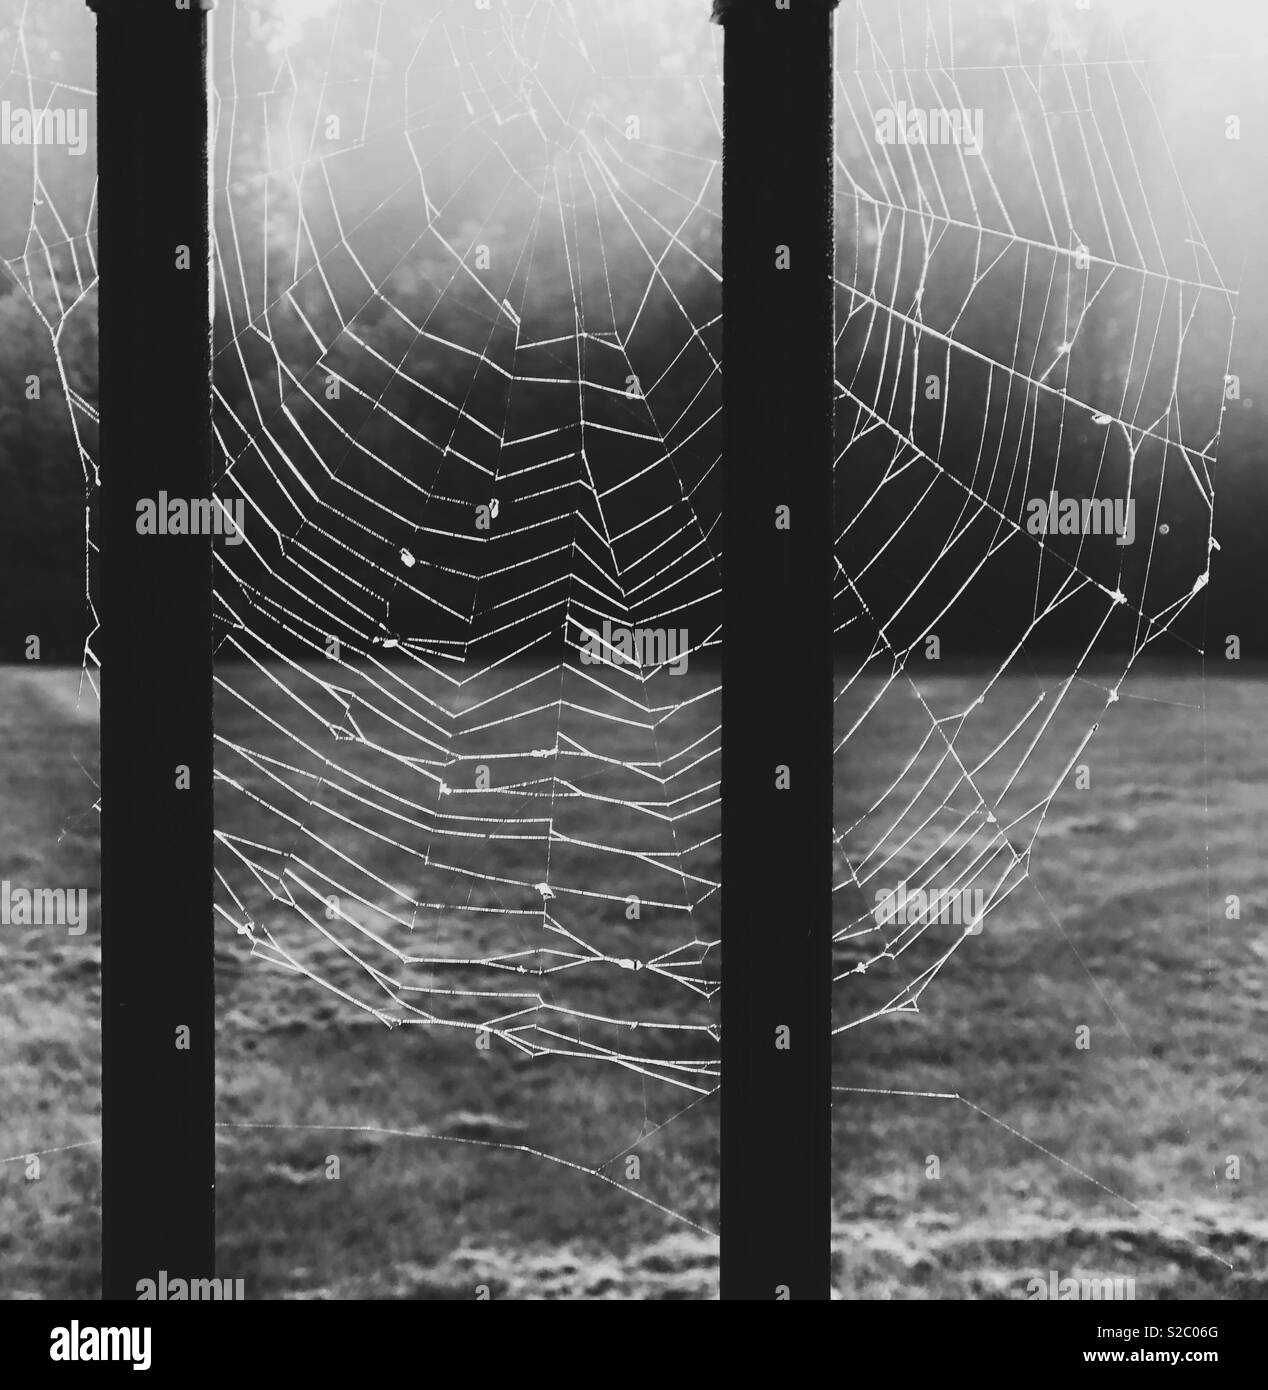 Black and white image of spiderweb illuminated by light - Stock Image